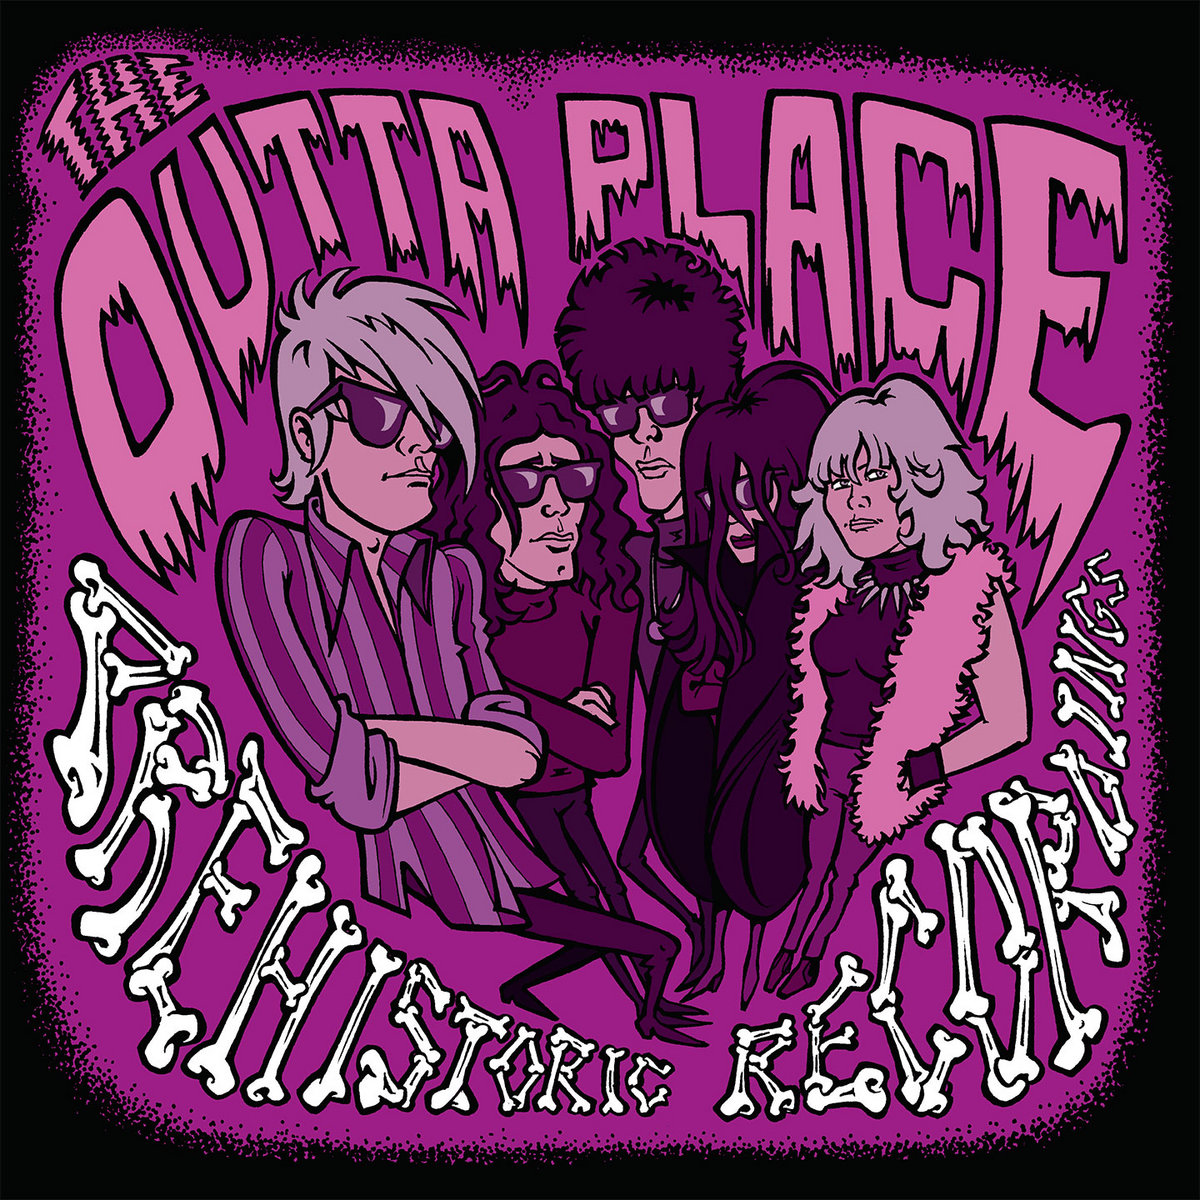 The Outta Place - Prehistoric Recordings